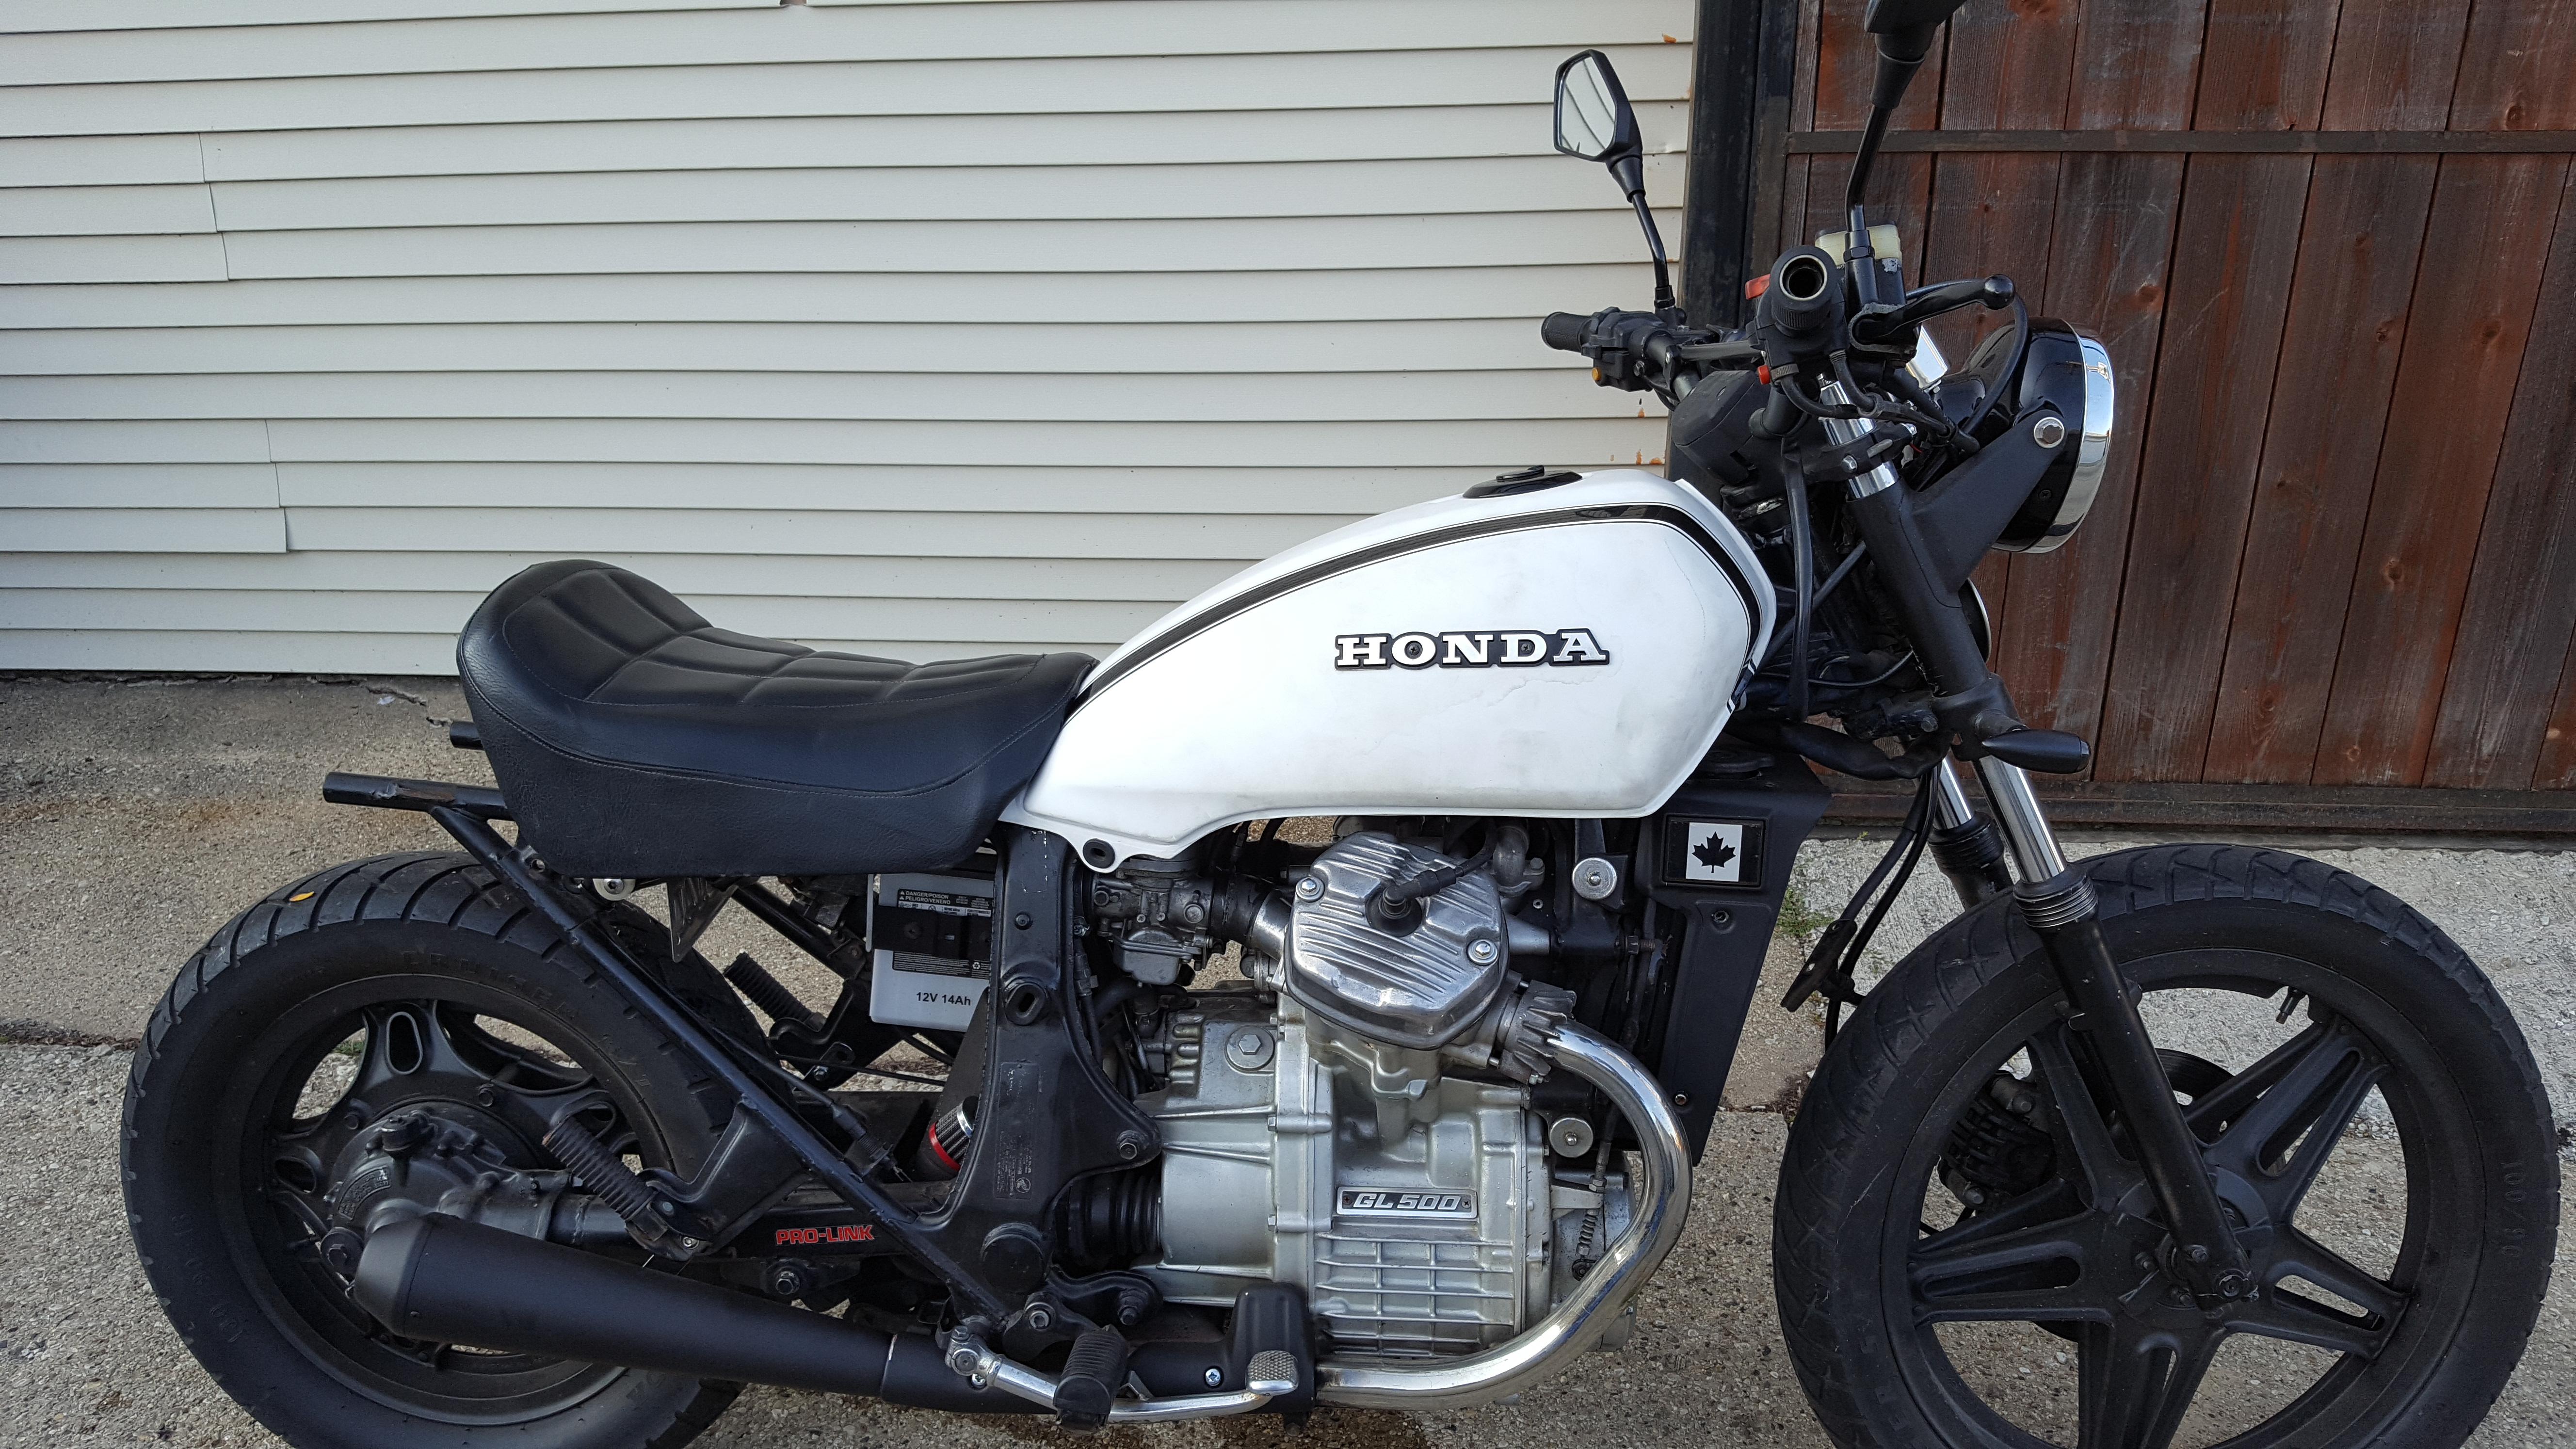 1981 GL500 For sale - perfect winter cafe racer project